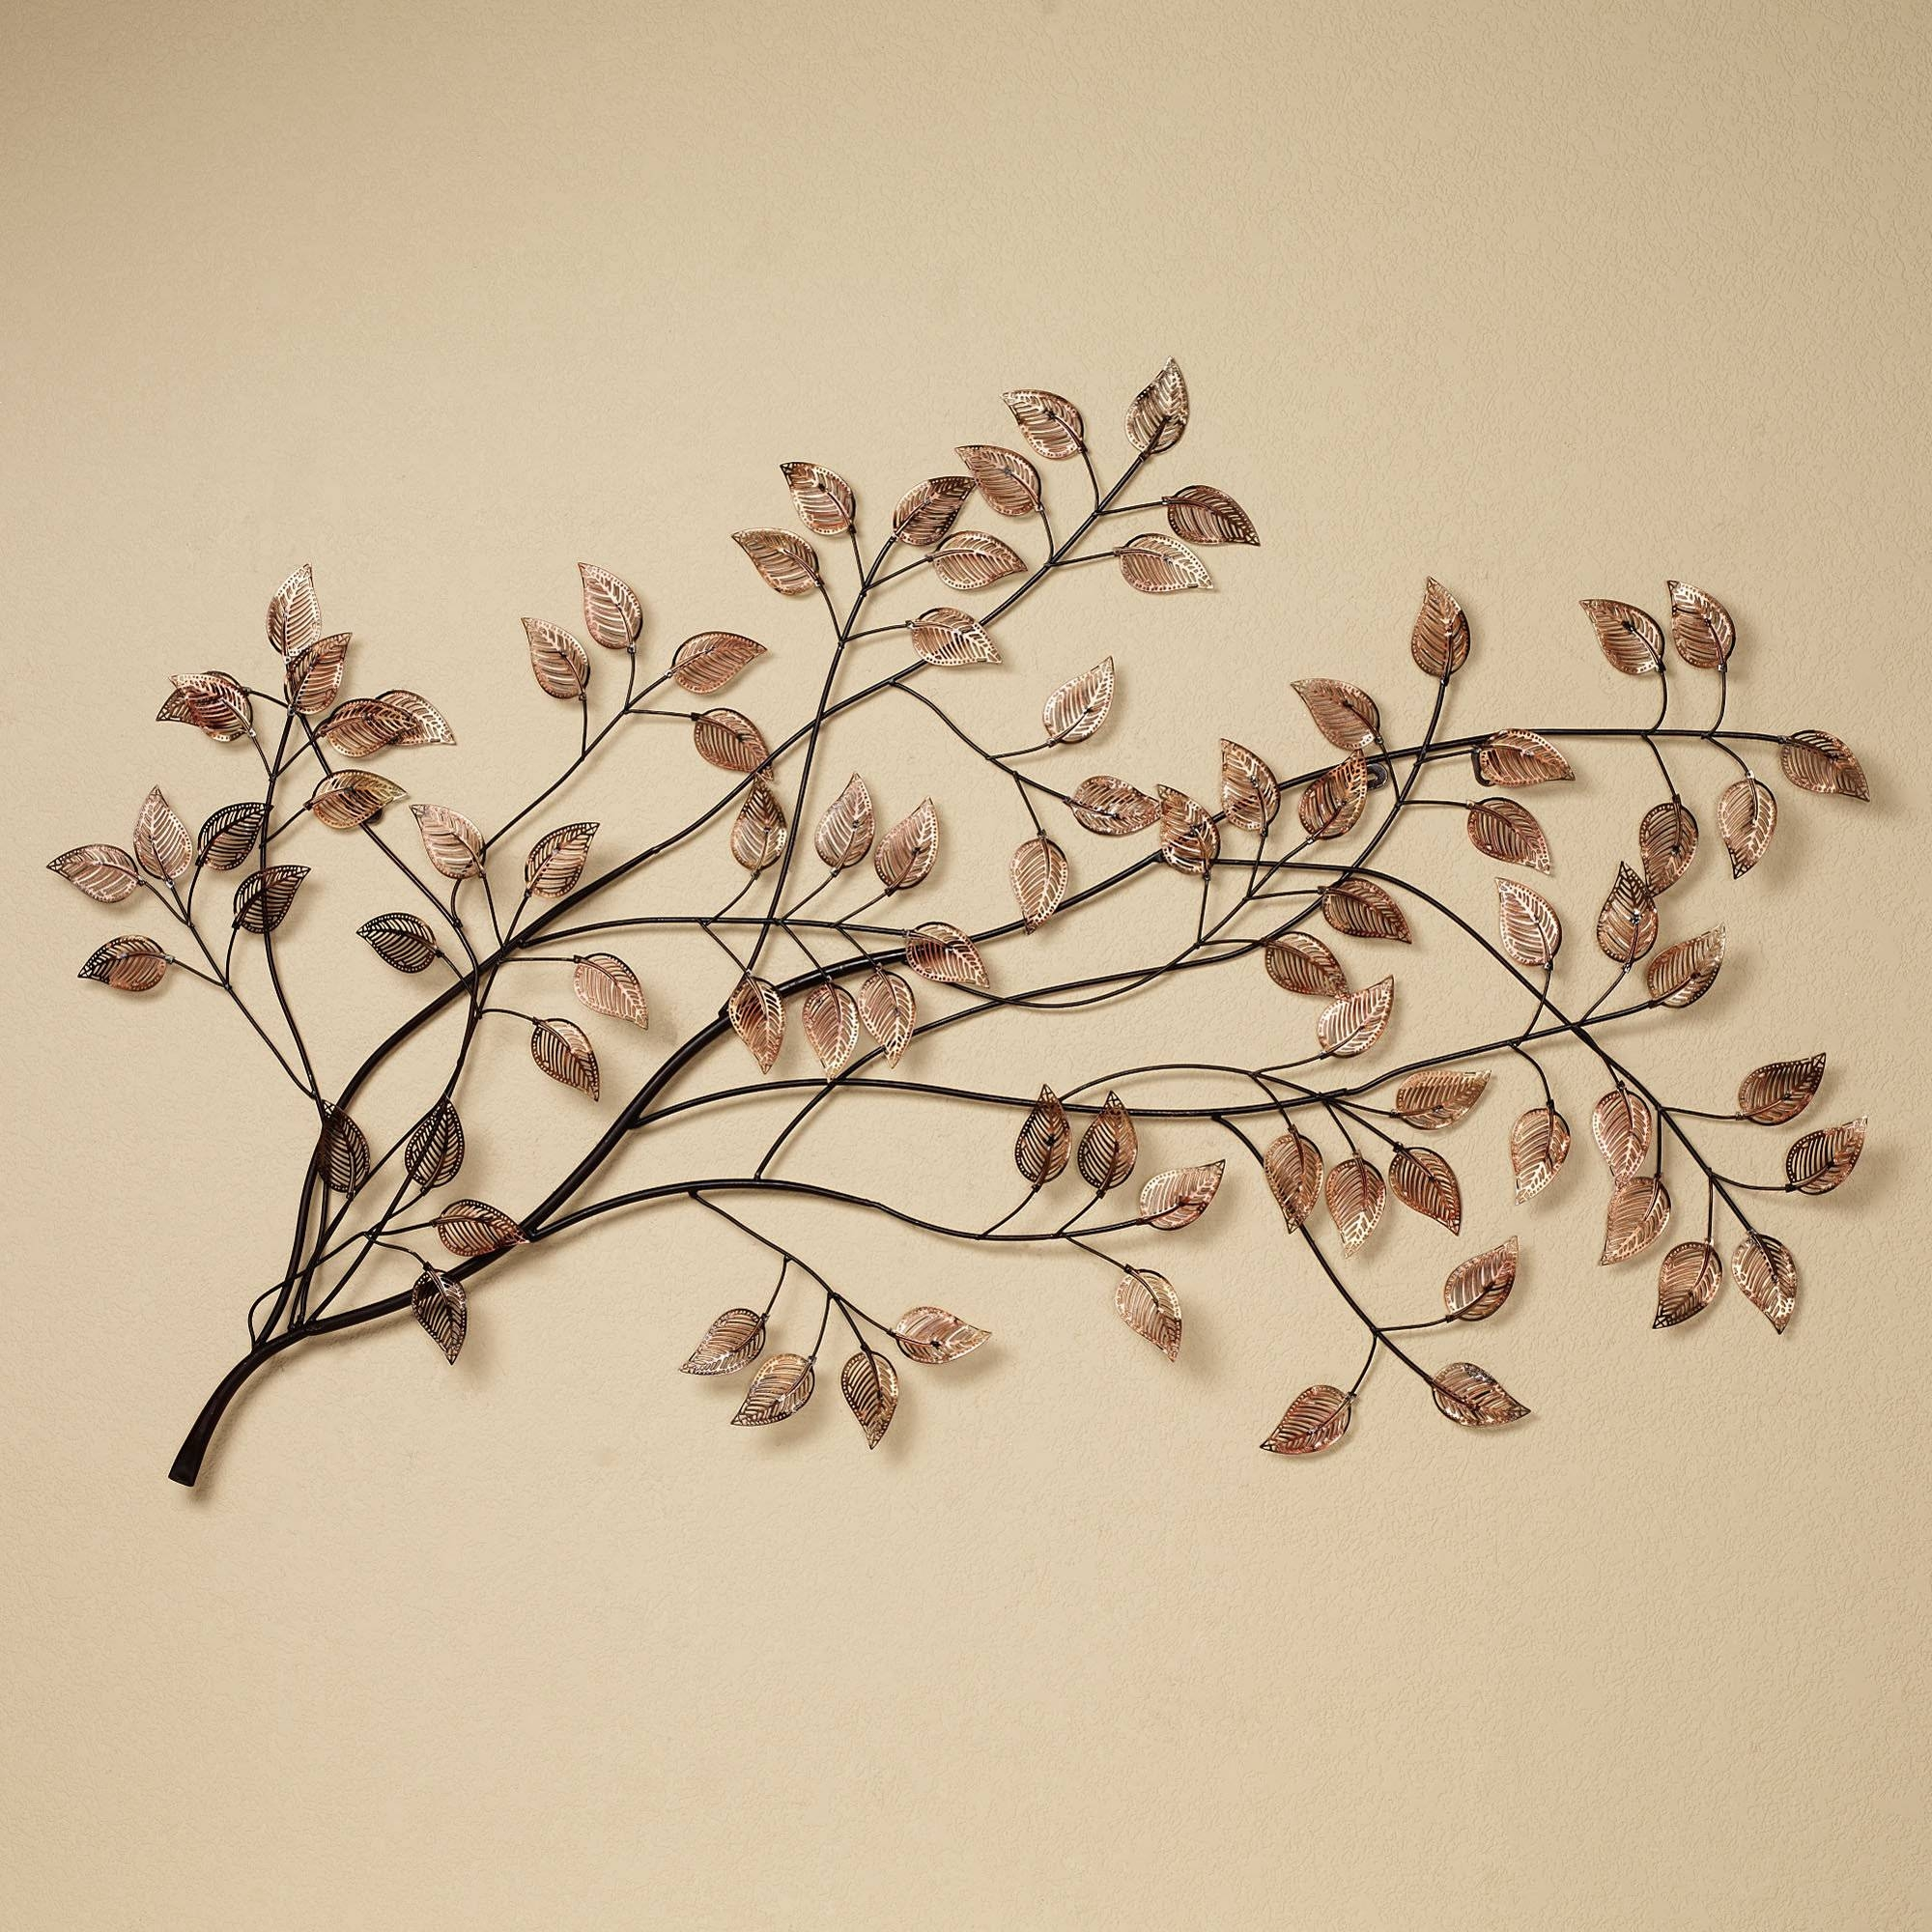 Awesome Natural Plant Design For Metal Wall Art And Decor Leaves Within Latest Leaves Metal Wall Art (View 3 of 20)